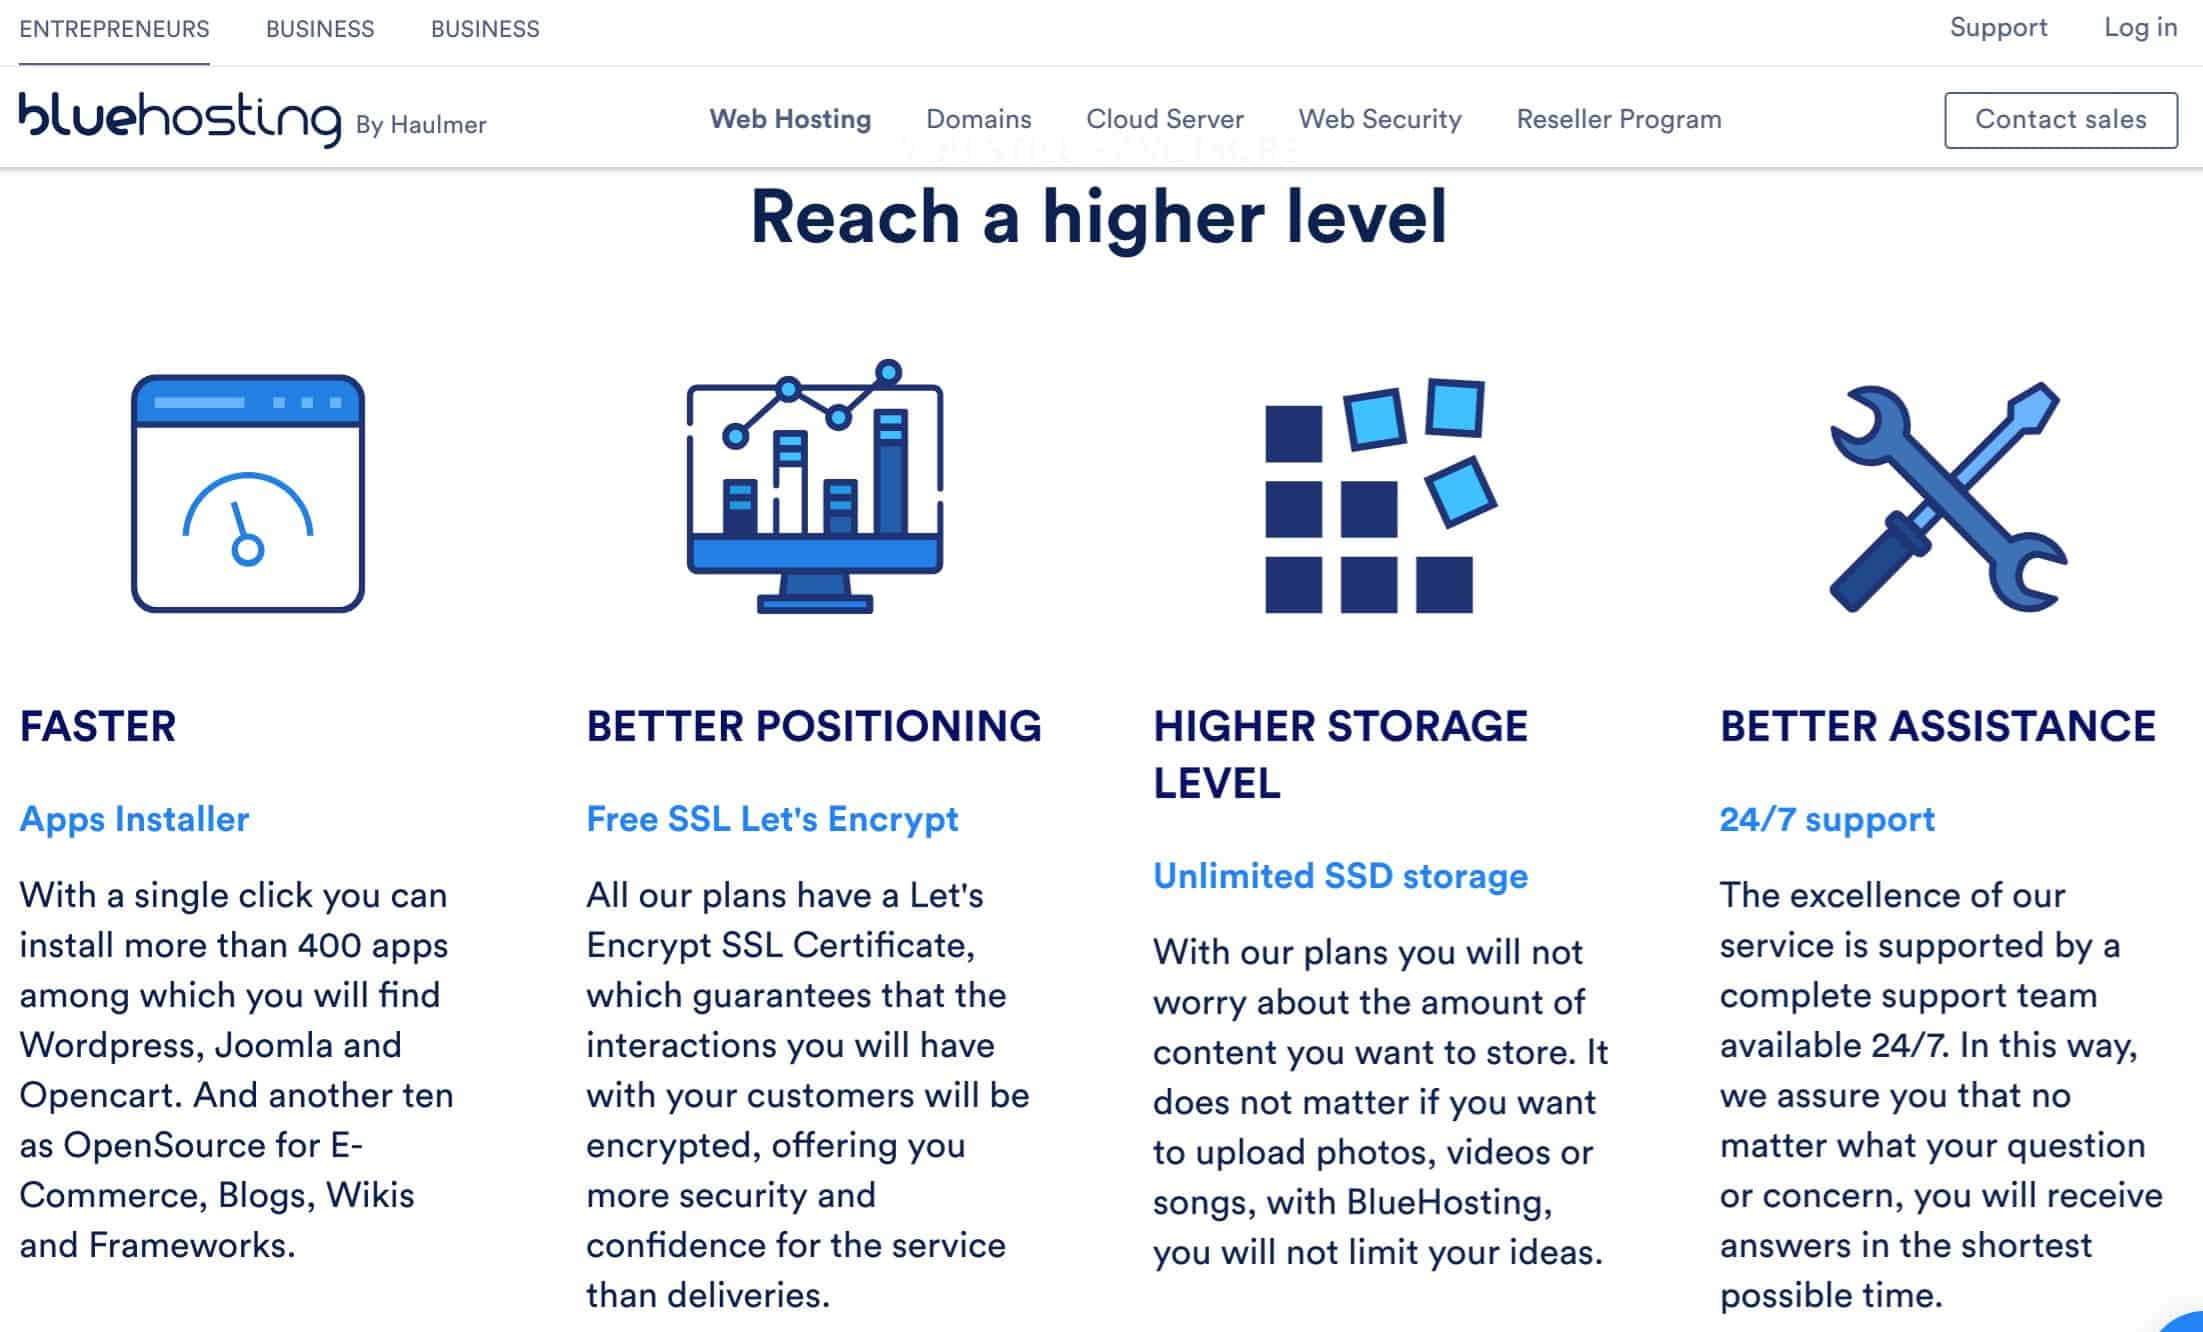 Bluehosting Review 2019: Is Bluehosting a Good Hosting?